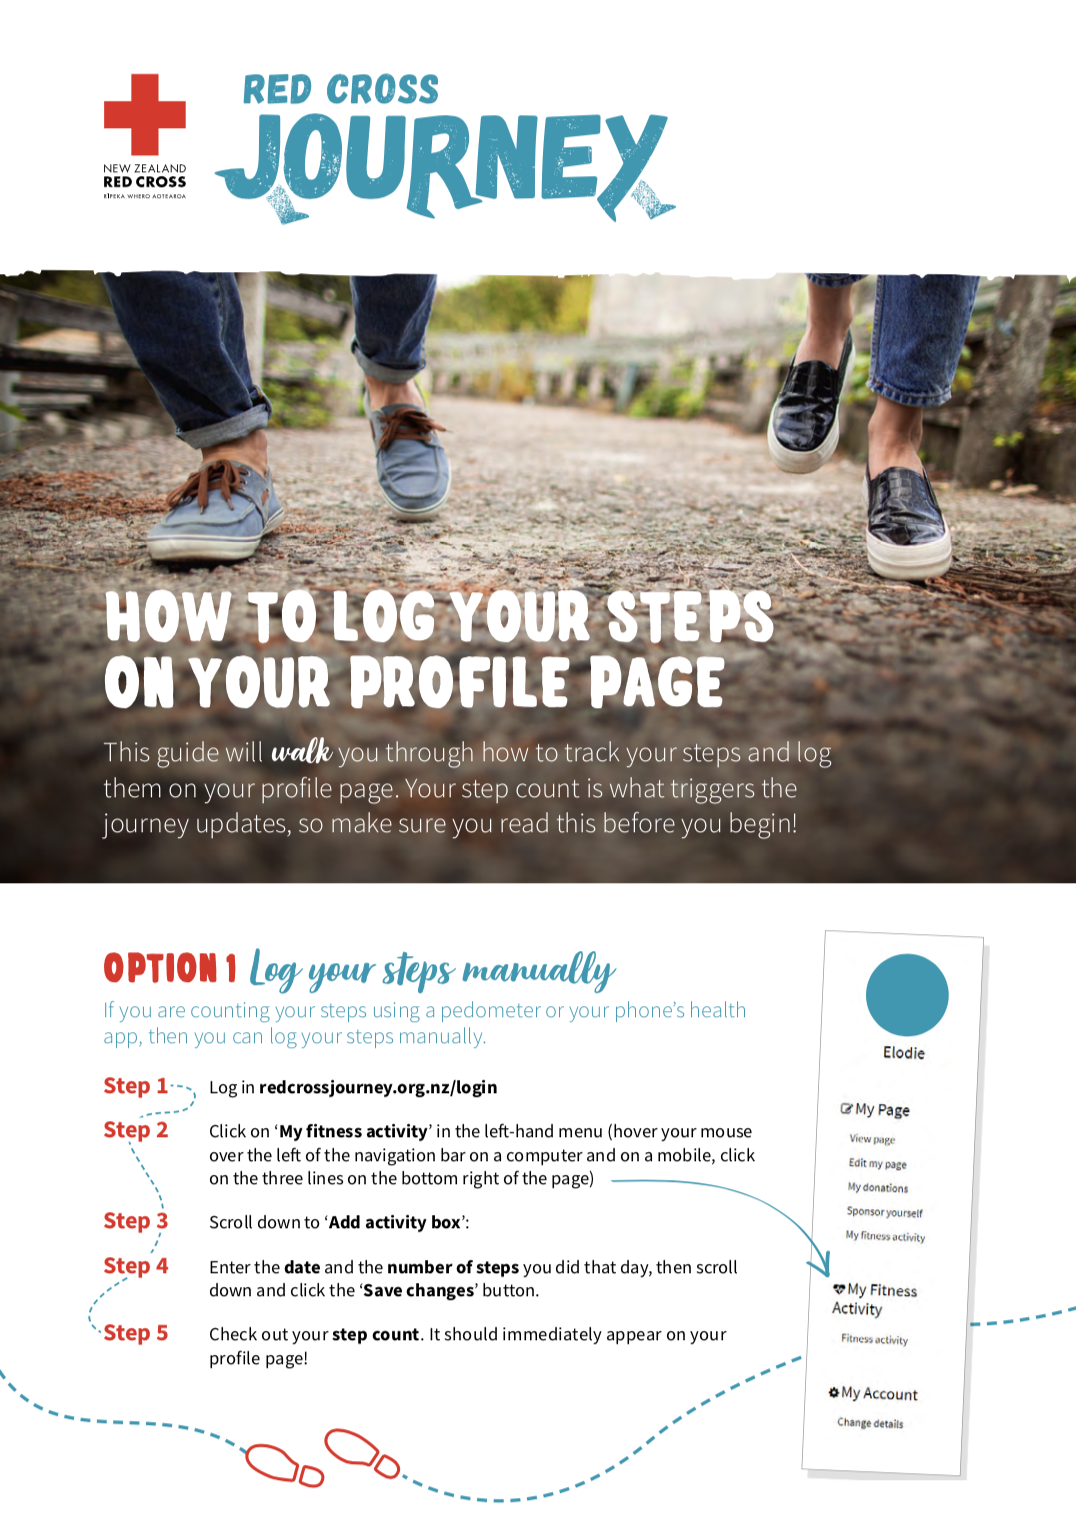 Guide to your steps